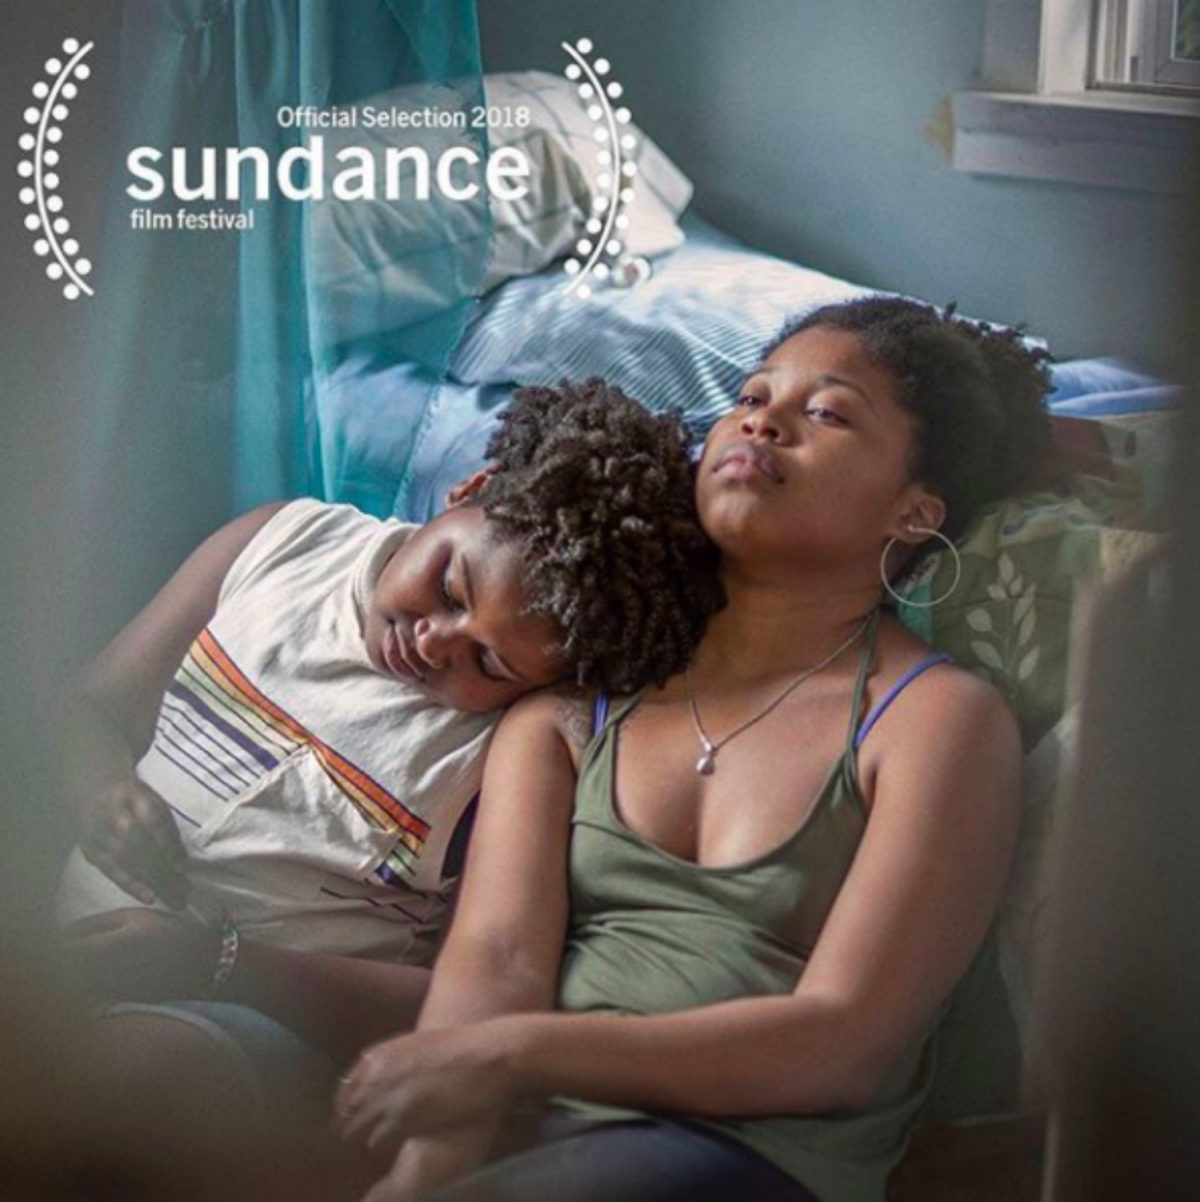 SEVEN SUNDANCE FILMS WITH FEMALE DIRECTORS THAT WE CAN'T WAIT TO SEE